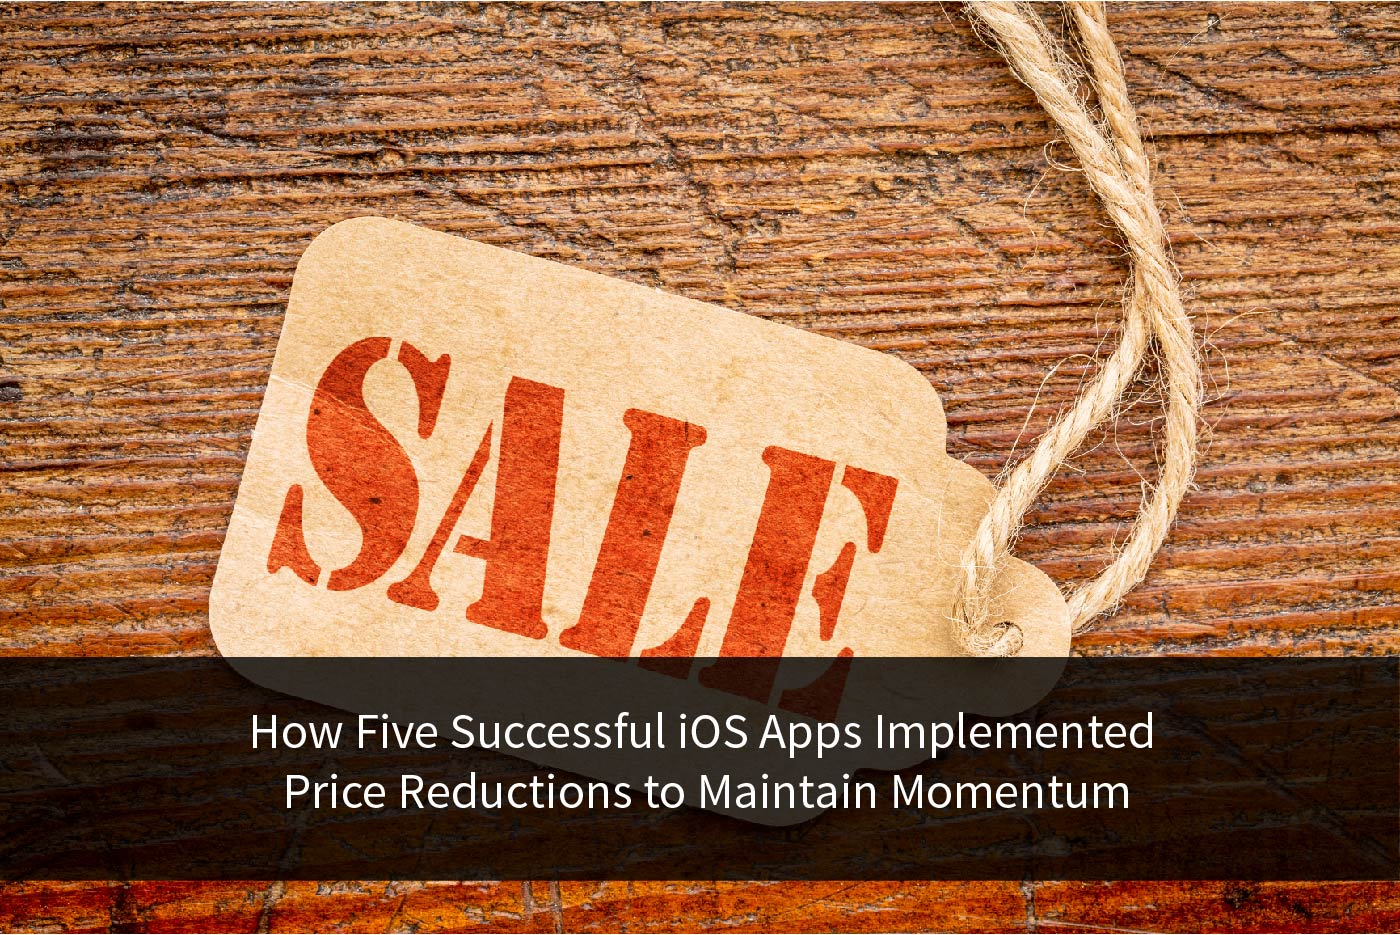 Title Image for How Five Successful iOS Apps Implemented Price Reductions to Maintain Momentum